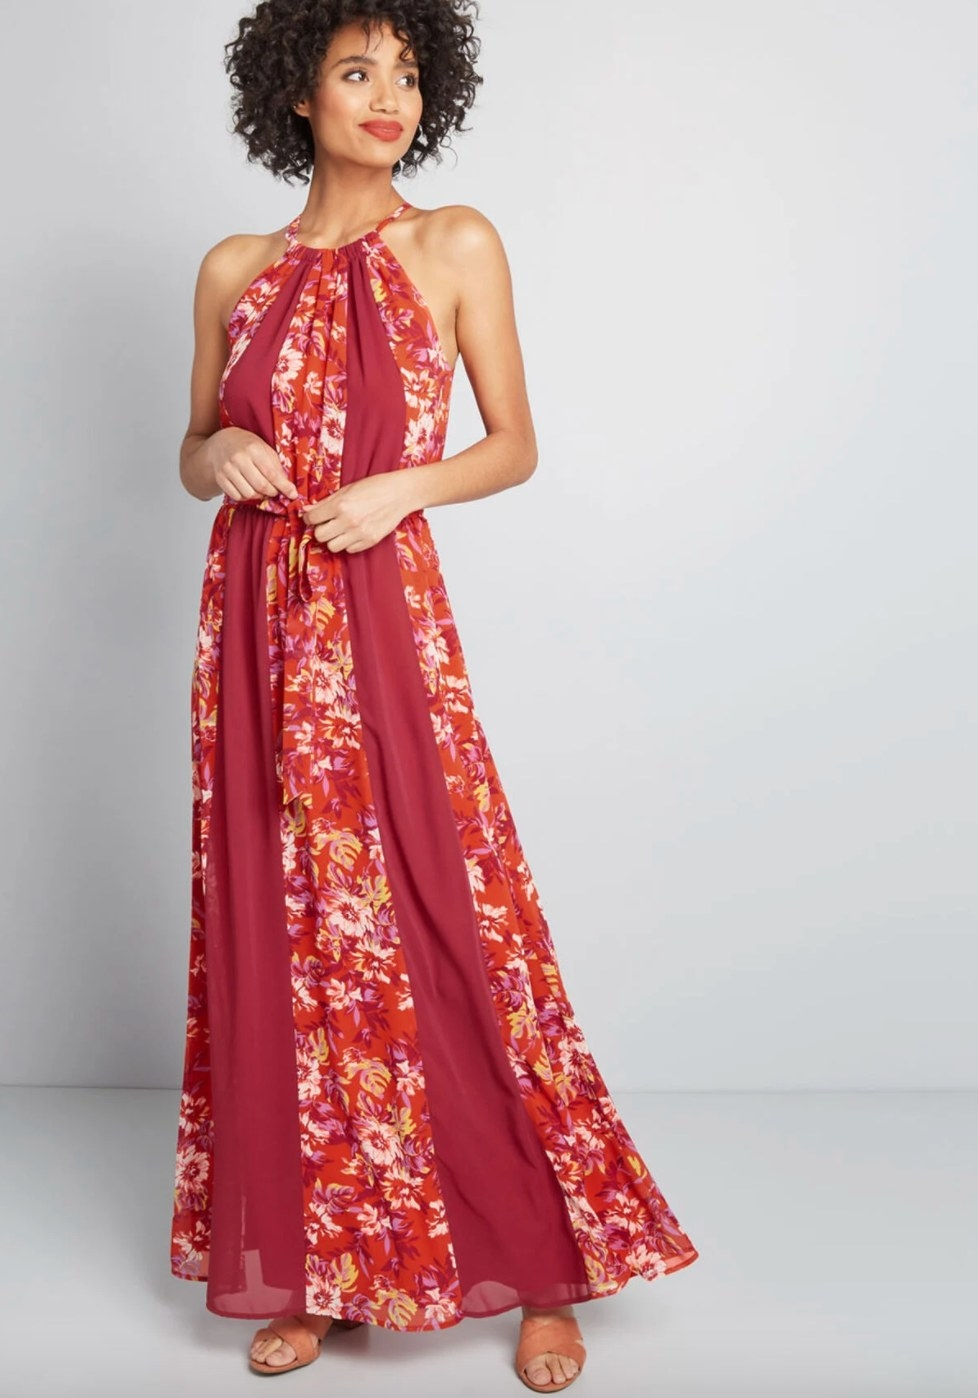 The chiffon maxi dress in stripes of solid red and red floral